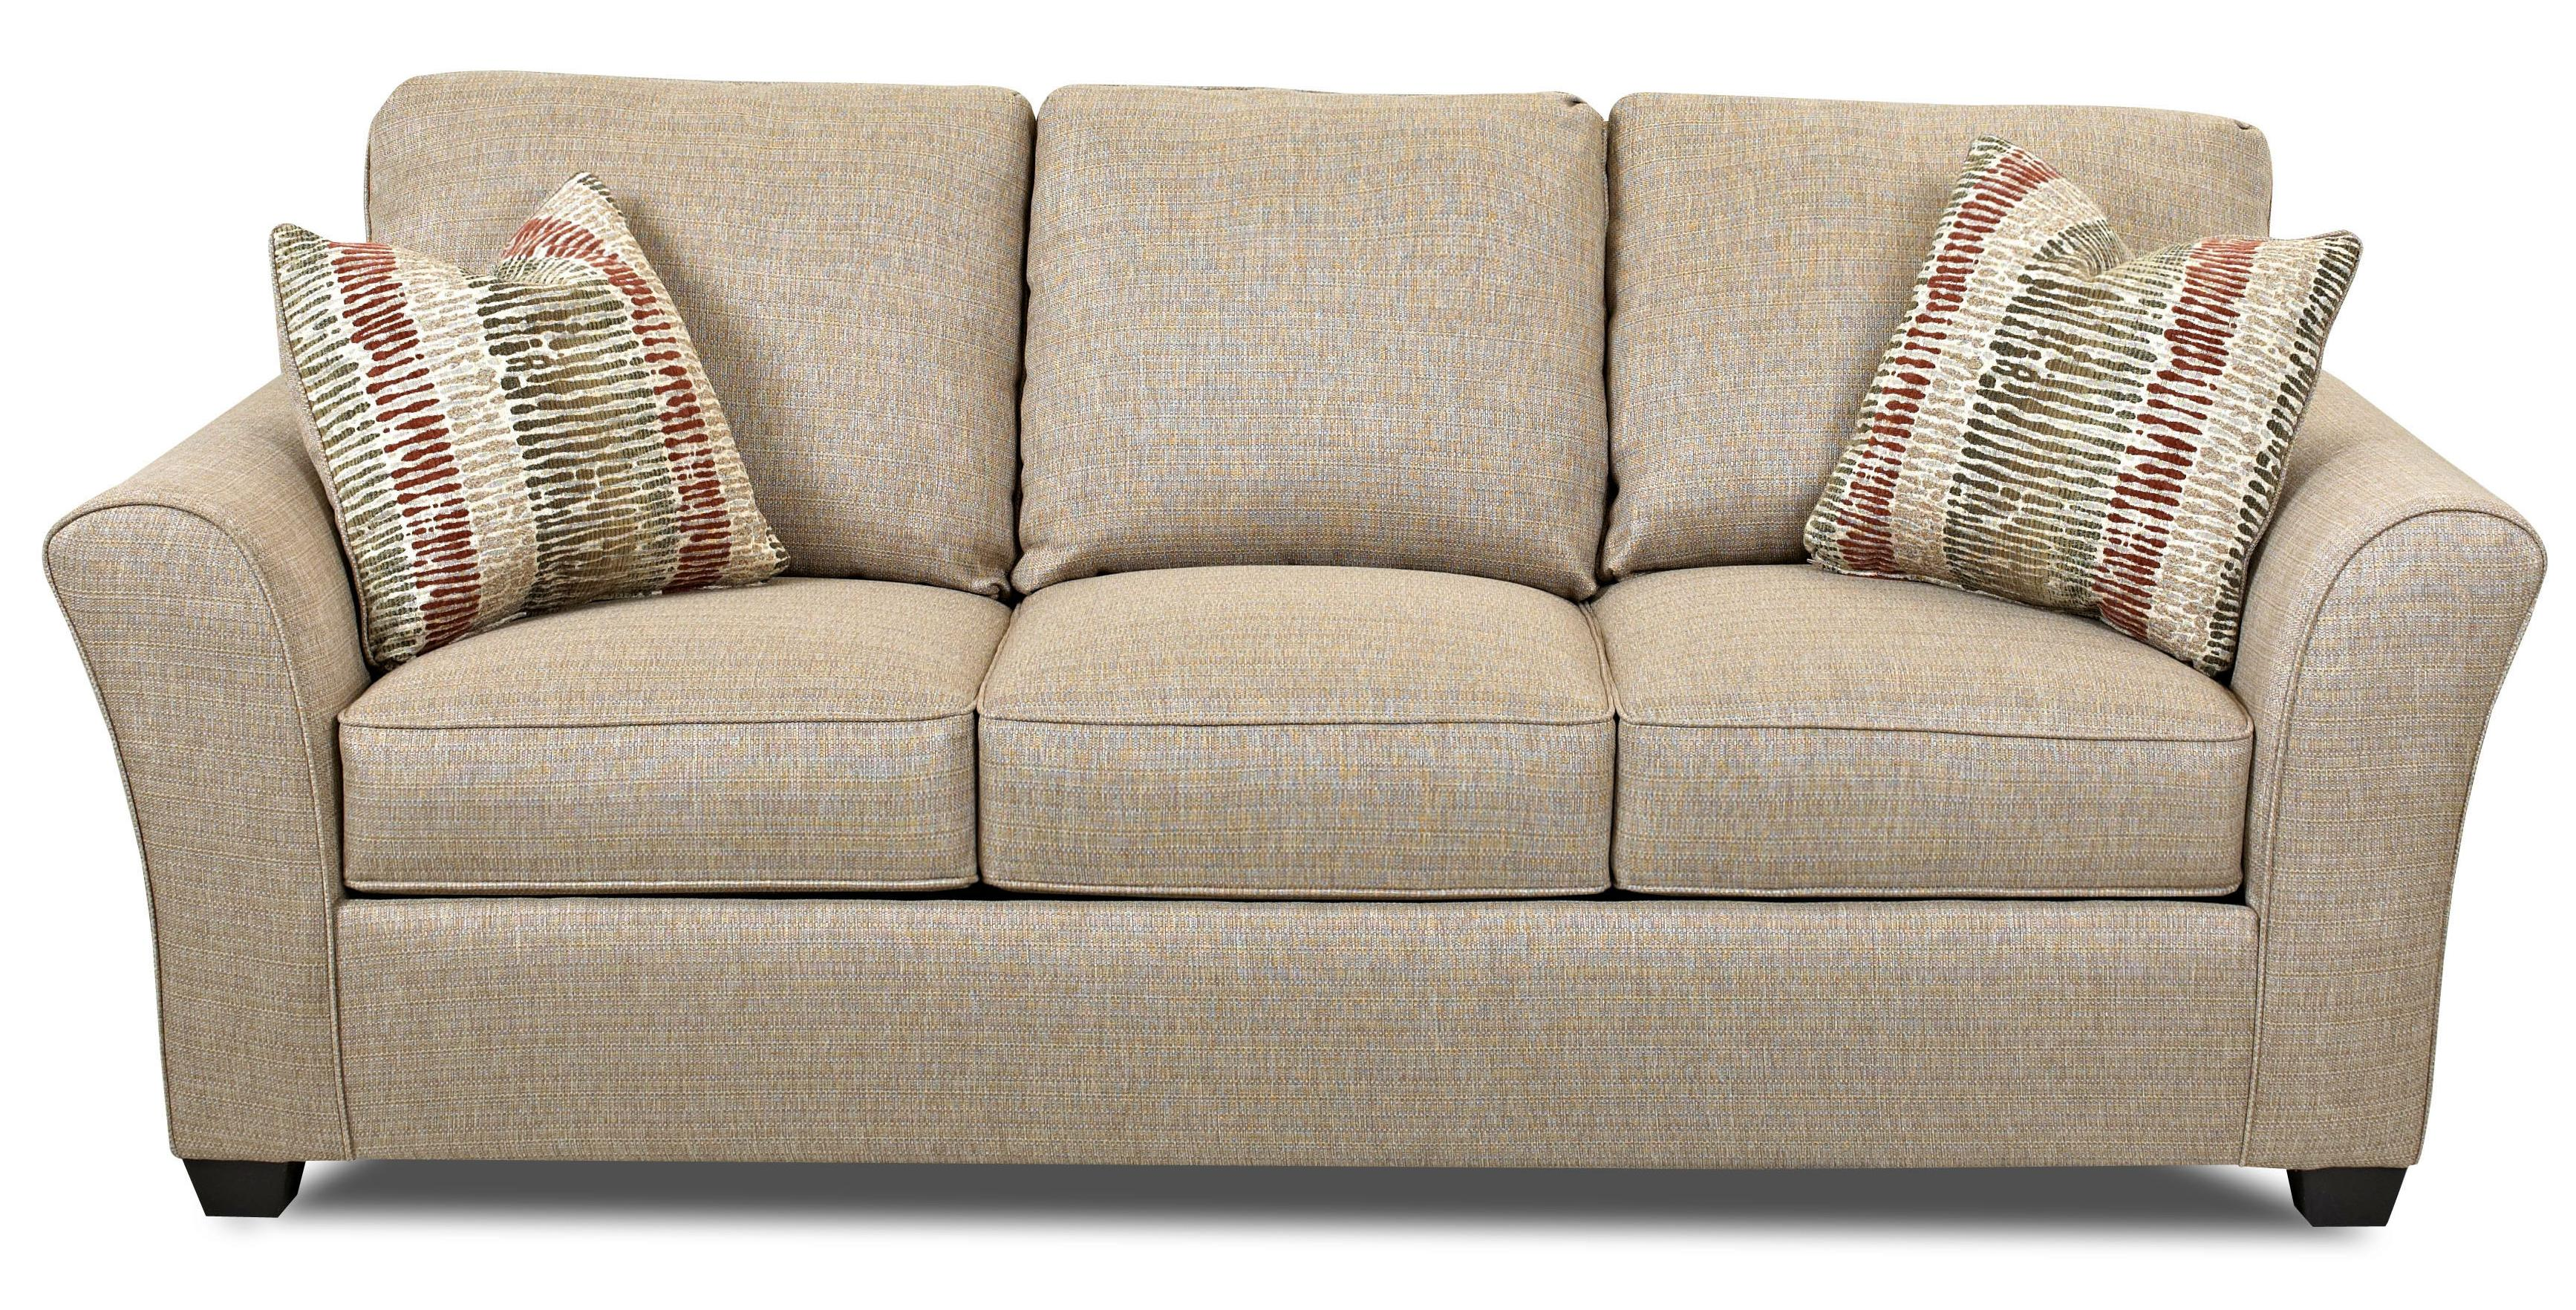 Transitional Dreamquest Queen Sleeper Sofa